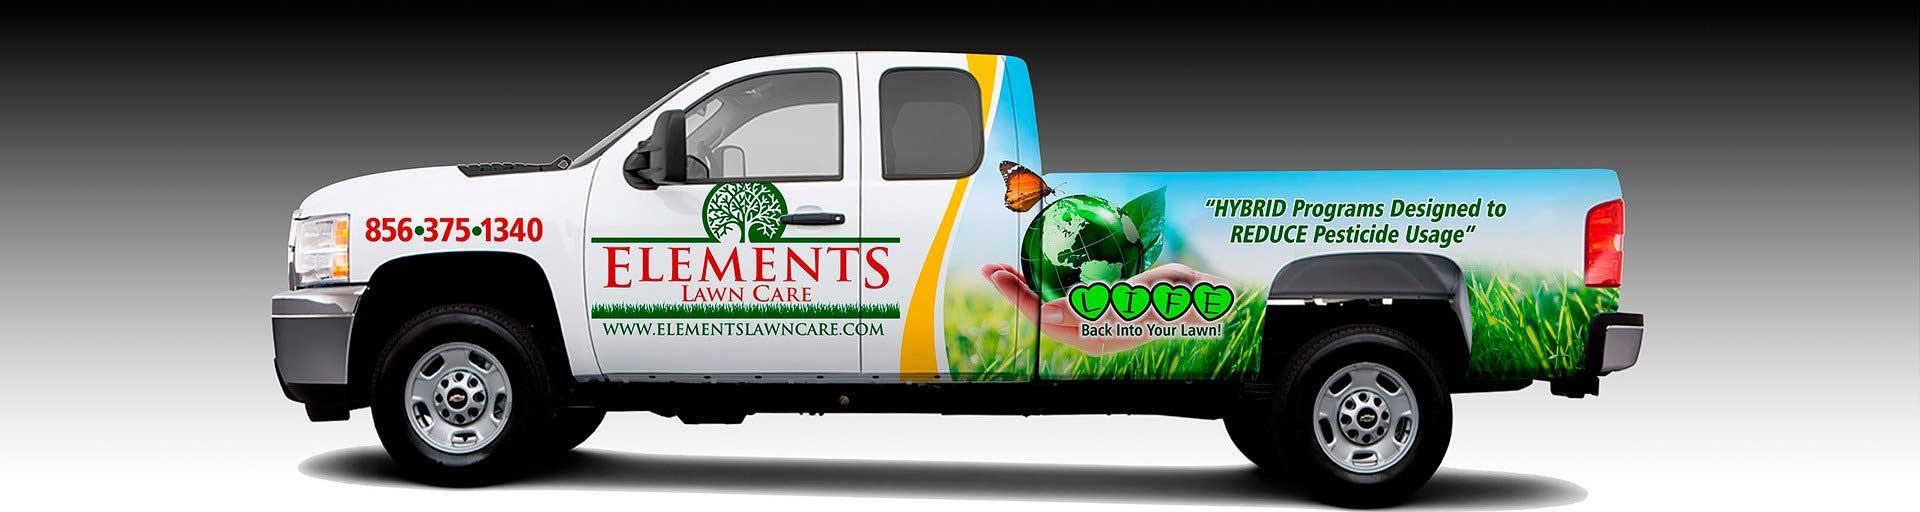 Have you seen our Elements Lawn Care trucks in your neighborhood?